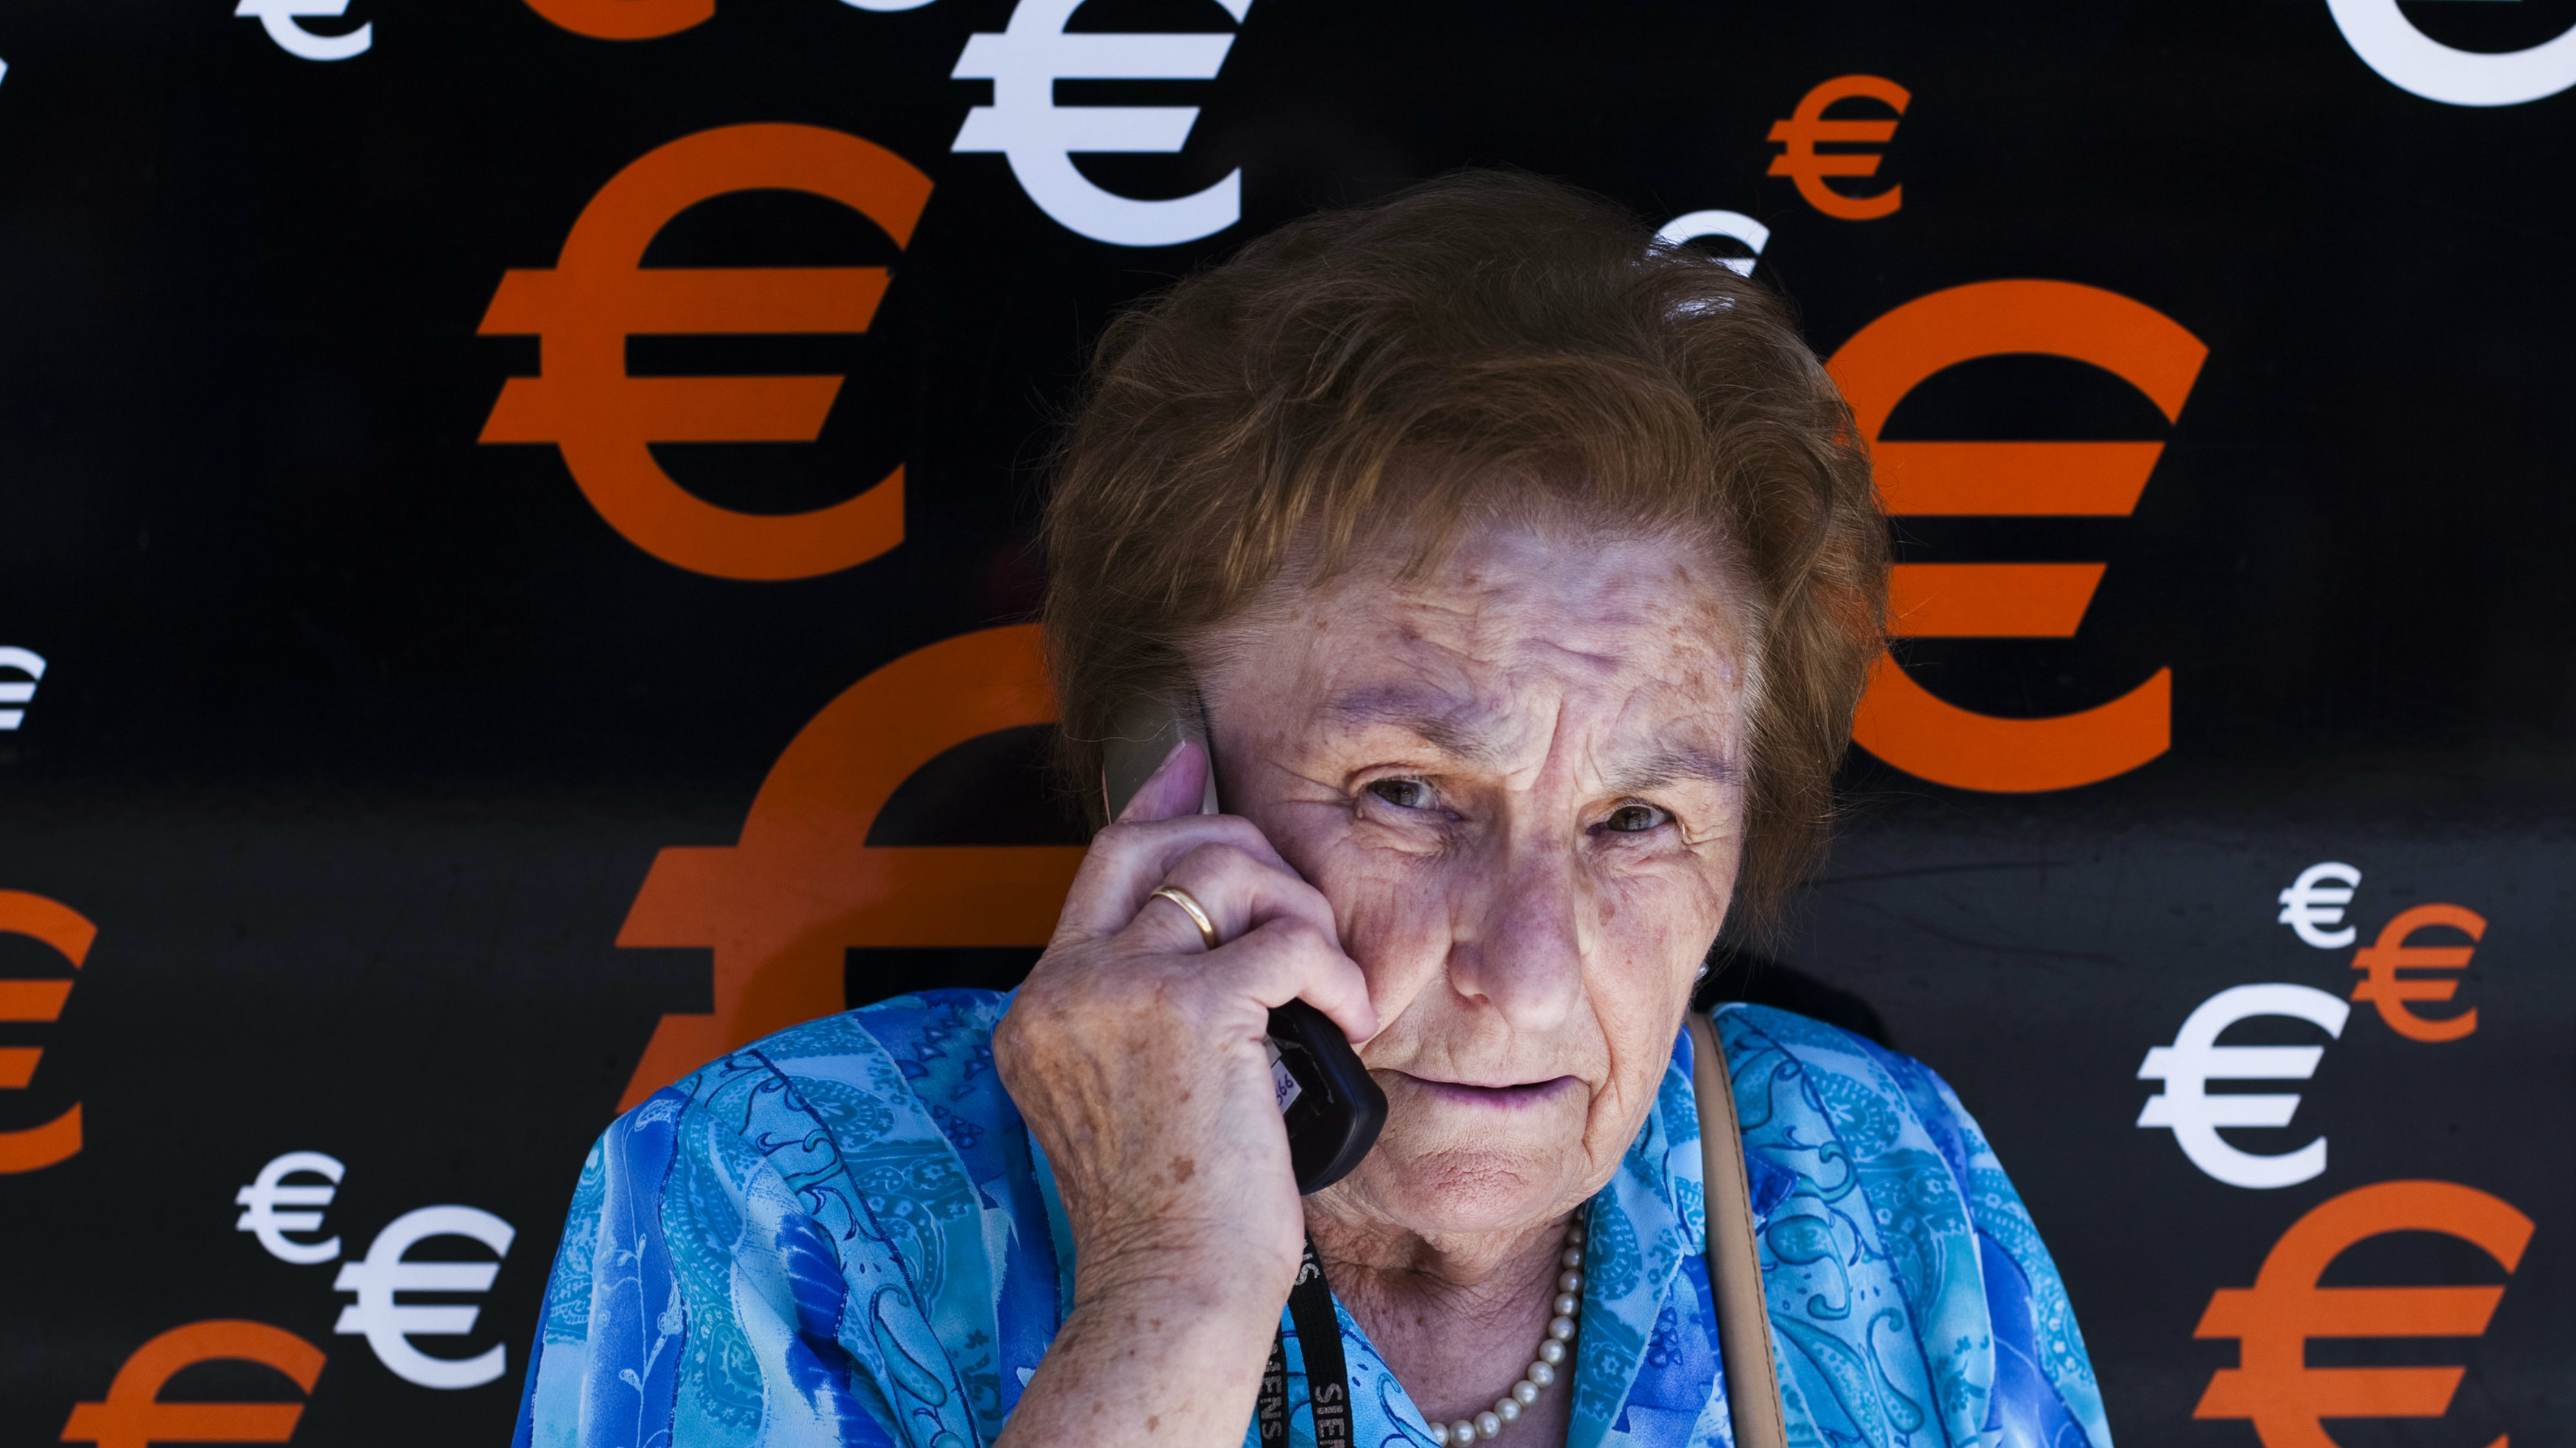 A woman speaks on her mobile phone as she stands next to euro signs in Madrid June 21, 2012. Spain's banks would need between 51 billion and 62 billion euros ($64-78 billion) in extra capital to weather a serious downturn of the economy and new losses on their books, two independent audits of the sector showed on Thursday. REUTERS/Susana Vera (SPAIN - Tags: BUSINESS POLITICS)